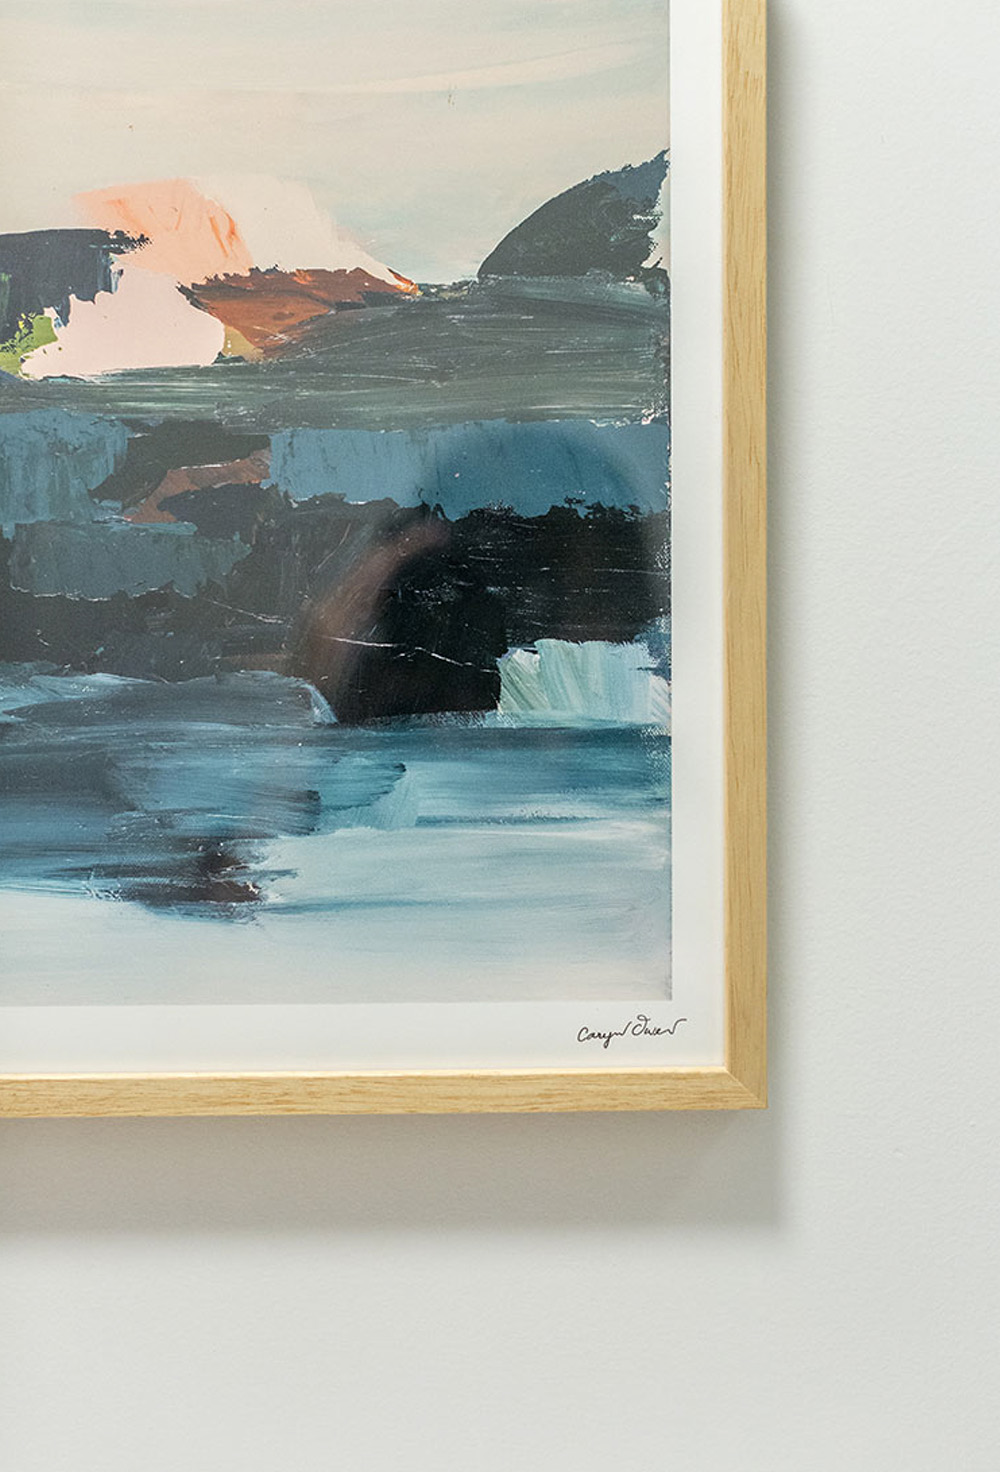 A painting in a wooden frame against a white wall.